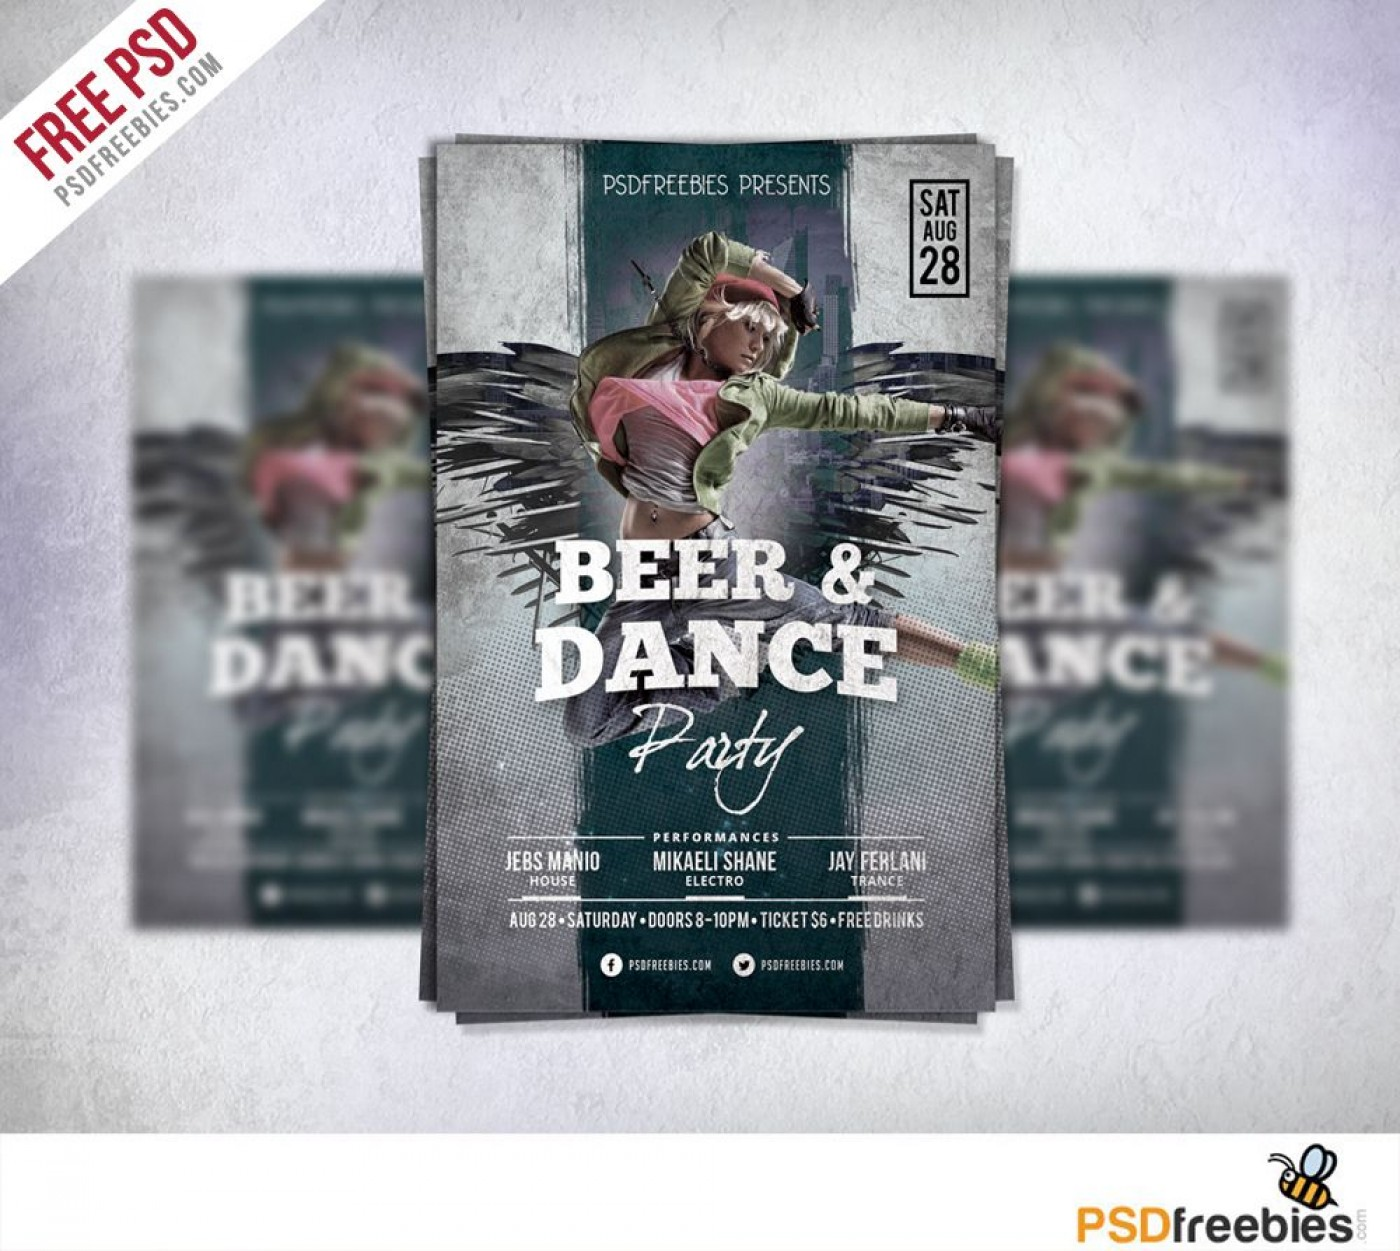 004 Rare Free Party Flyer Template For Photoshop Concept  Pool Psd Download1400